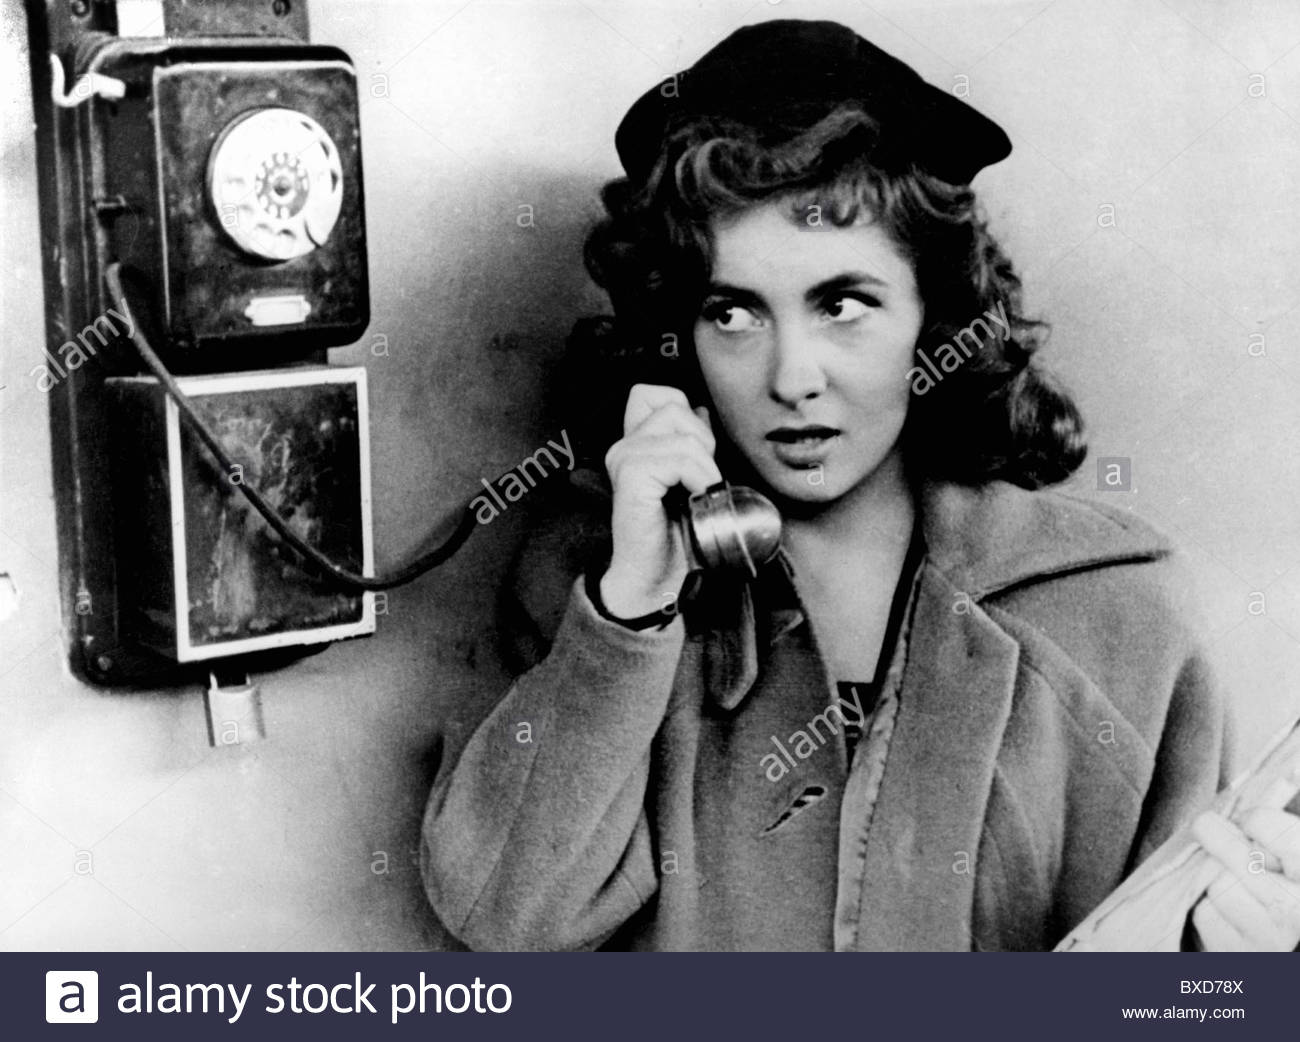 Lollobrigida, Gina, * 4.7.1927, Italian actress, half length, unknown movie scene, 1940s, Stock Photo